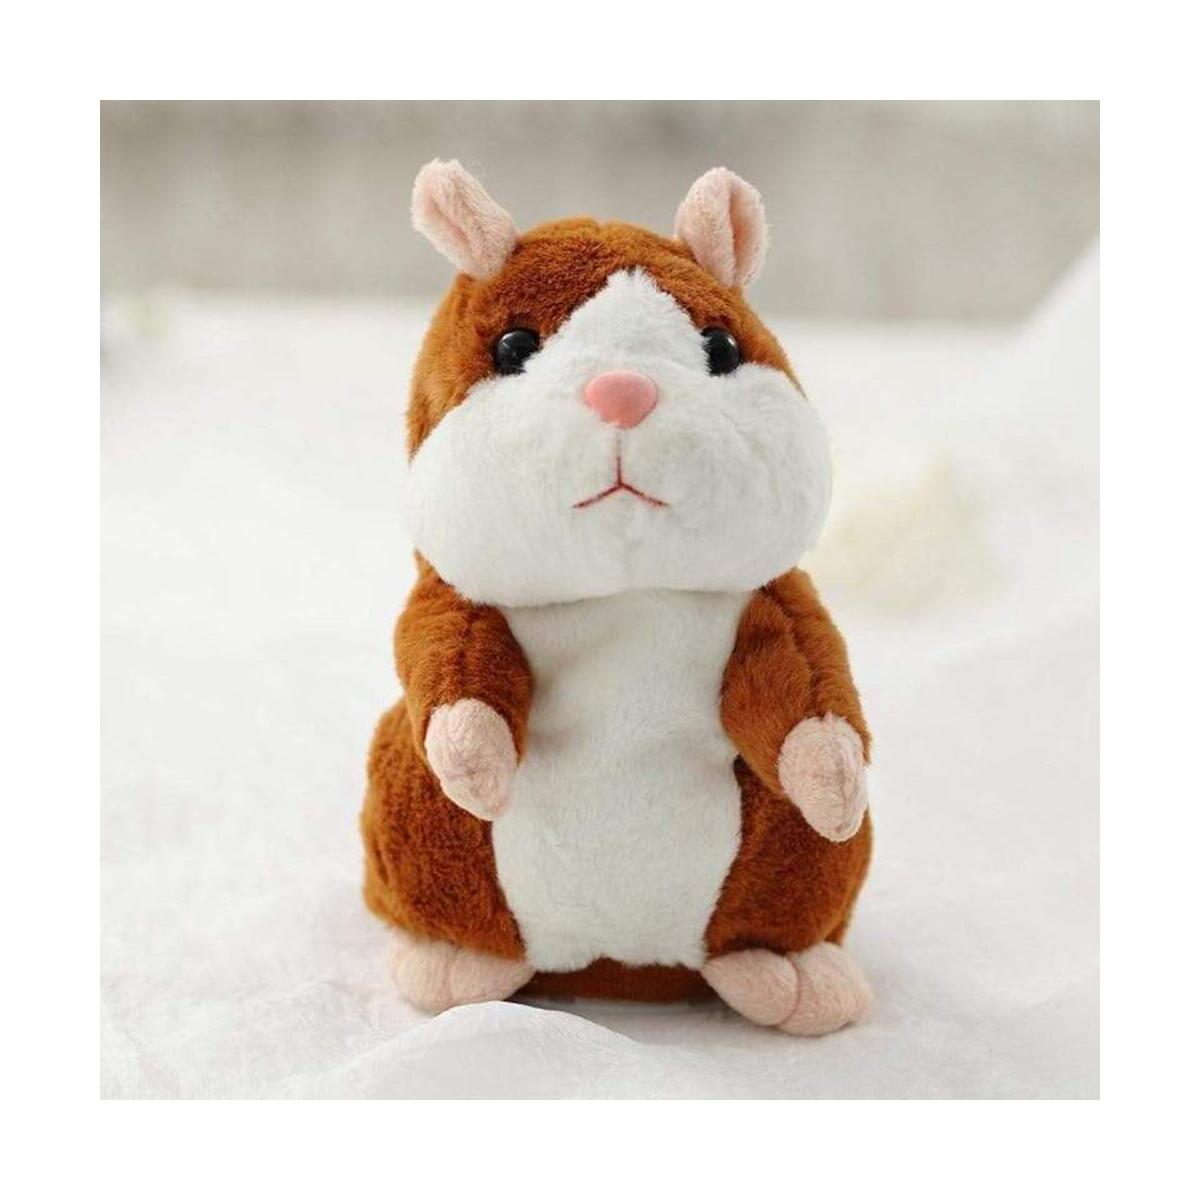 Milo Talking Hamster Plush Toy, Repeats What You Say Plush Animal Toy Electronic Hamster Mouse